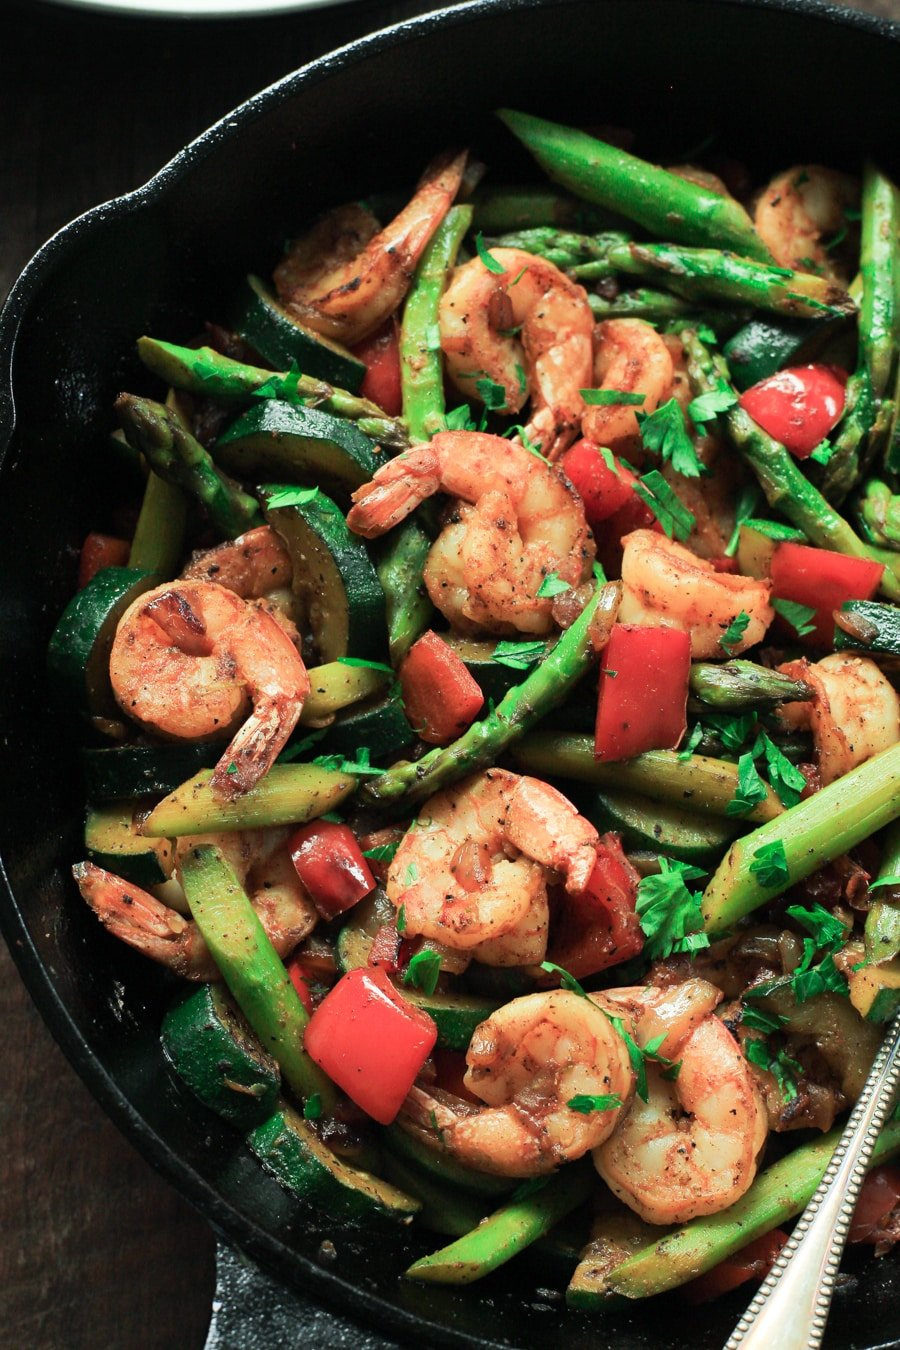 Shrimp Vegetable Skillet (Meal Prep)